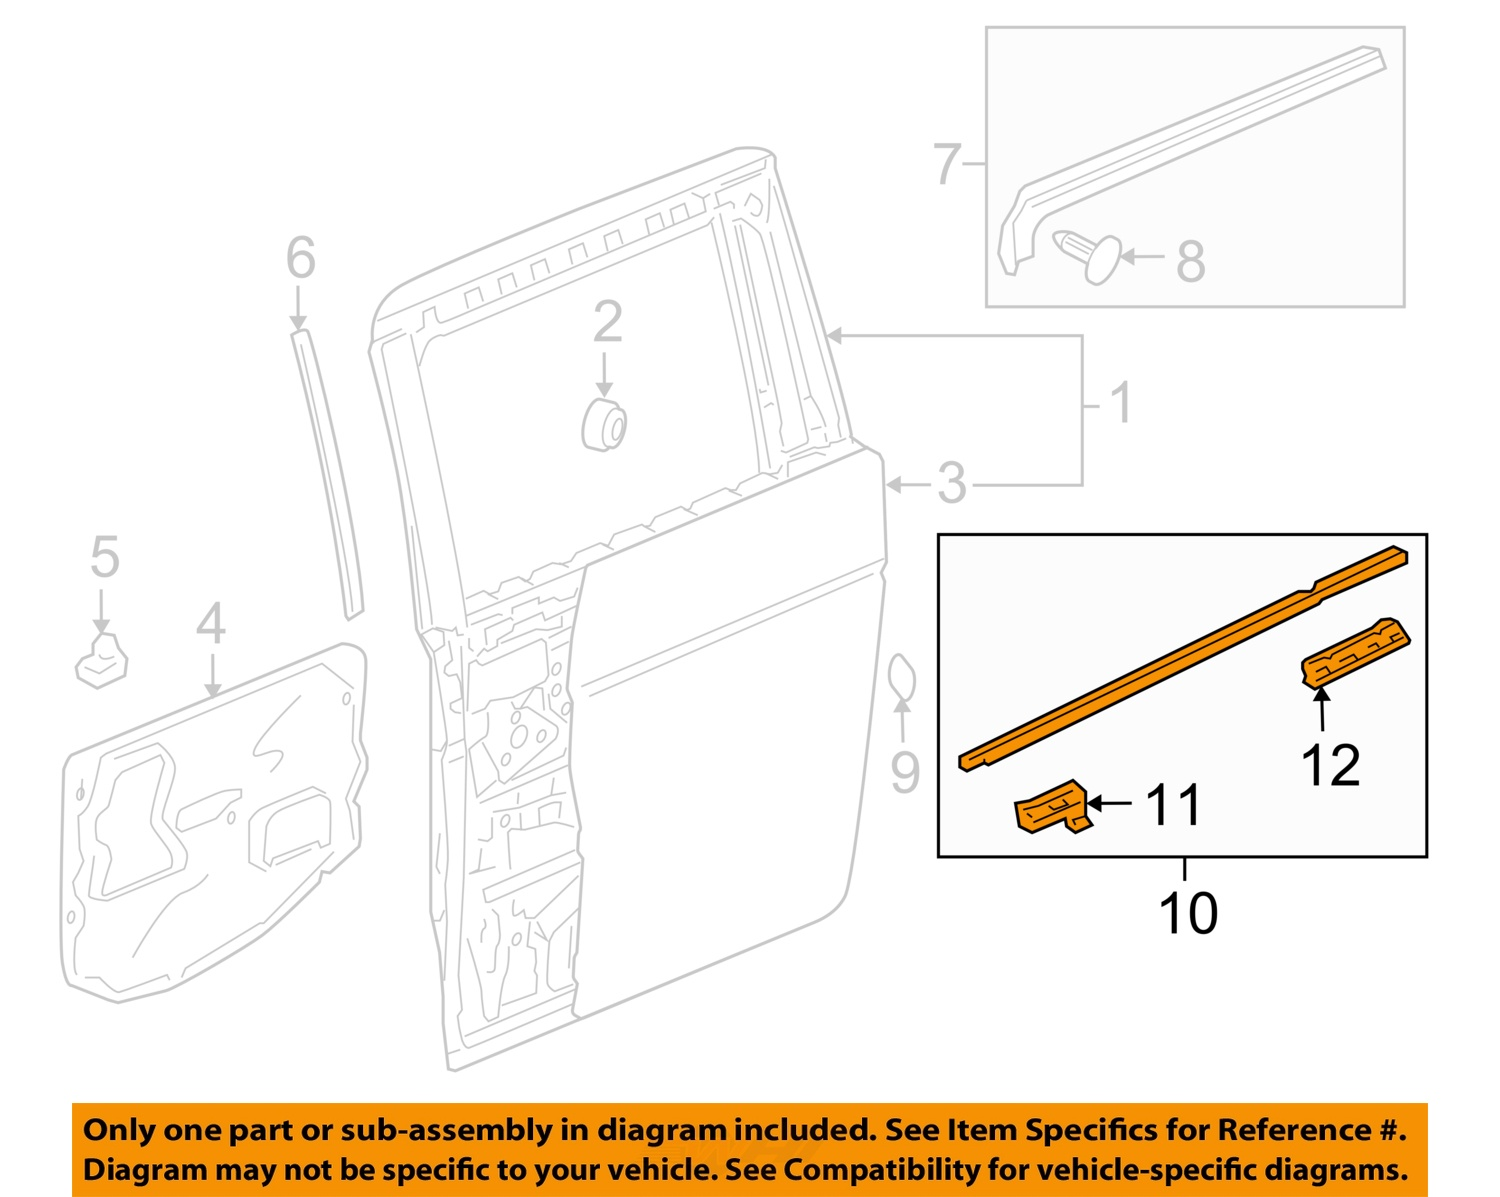 honda odyssey sliding door parts diagram 06 chevy silverado stereo wiring oem 05 07 side belt molding